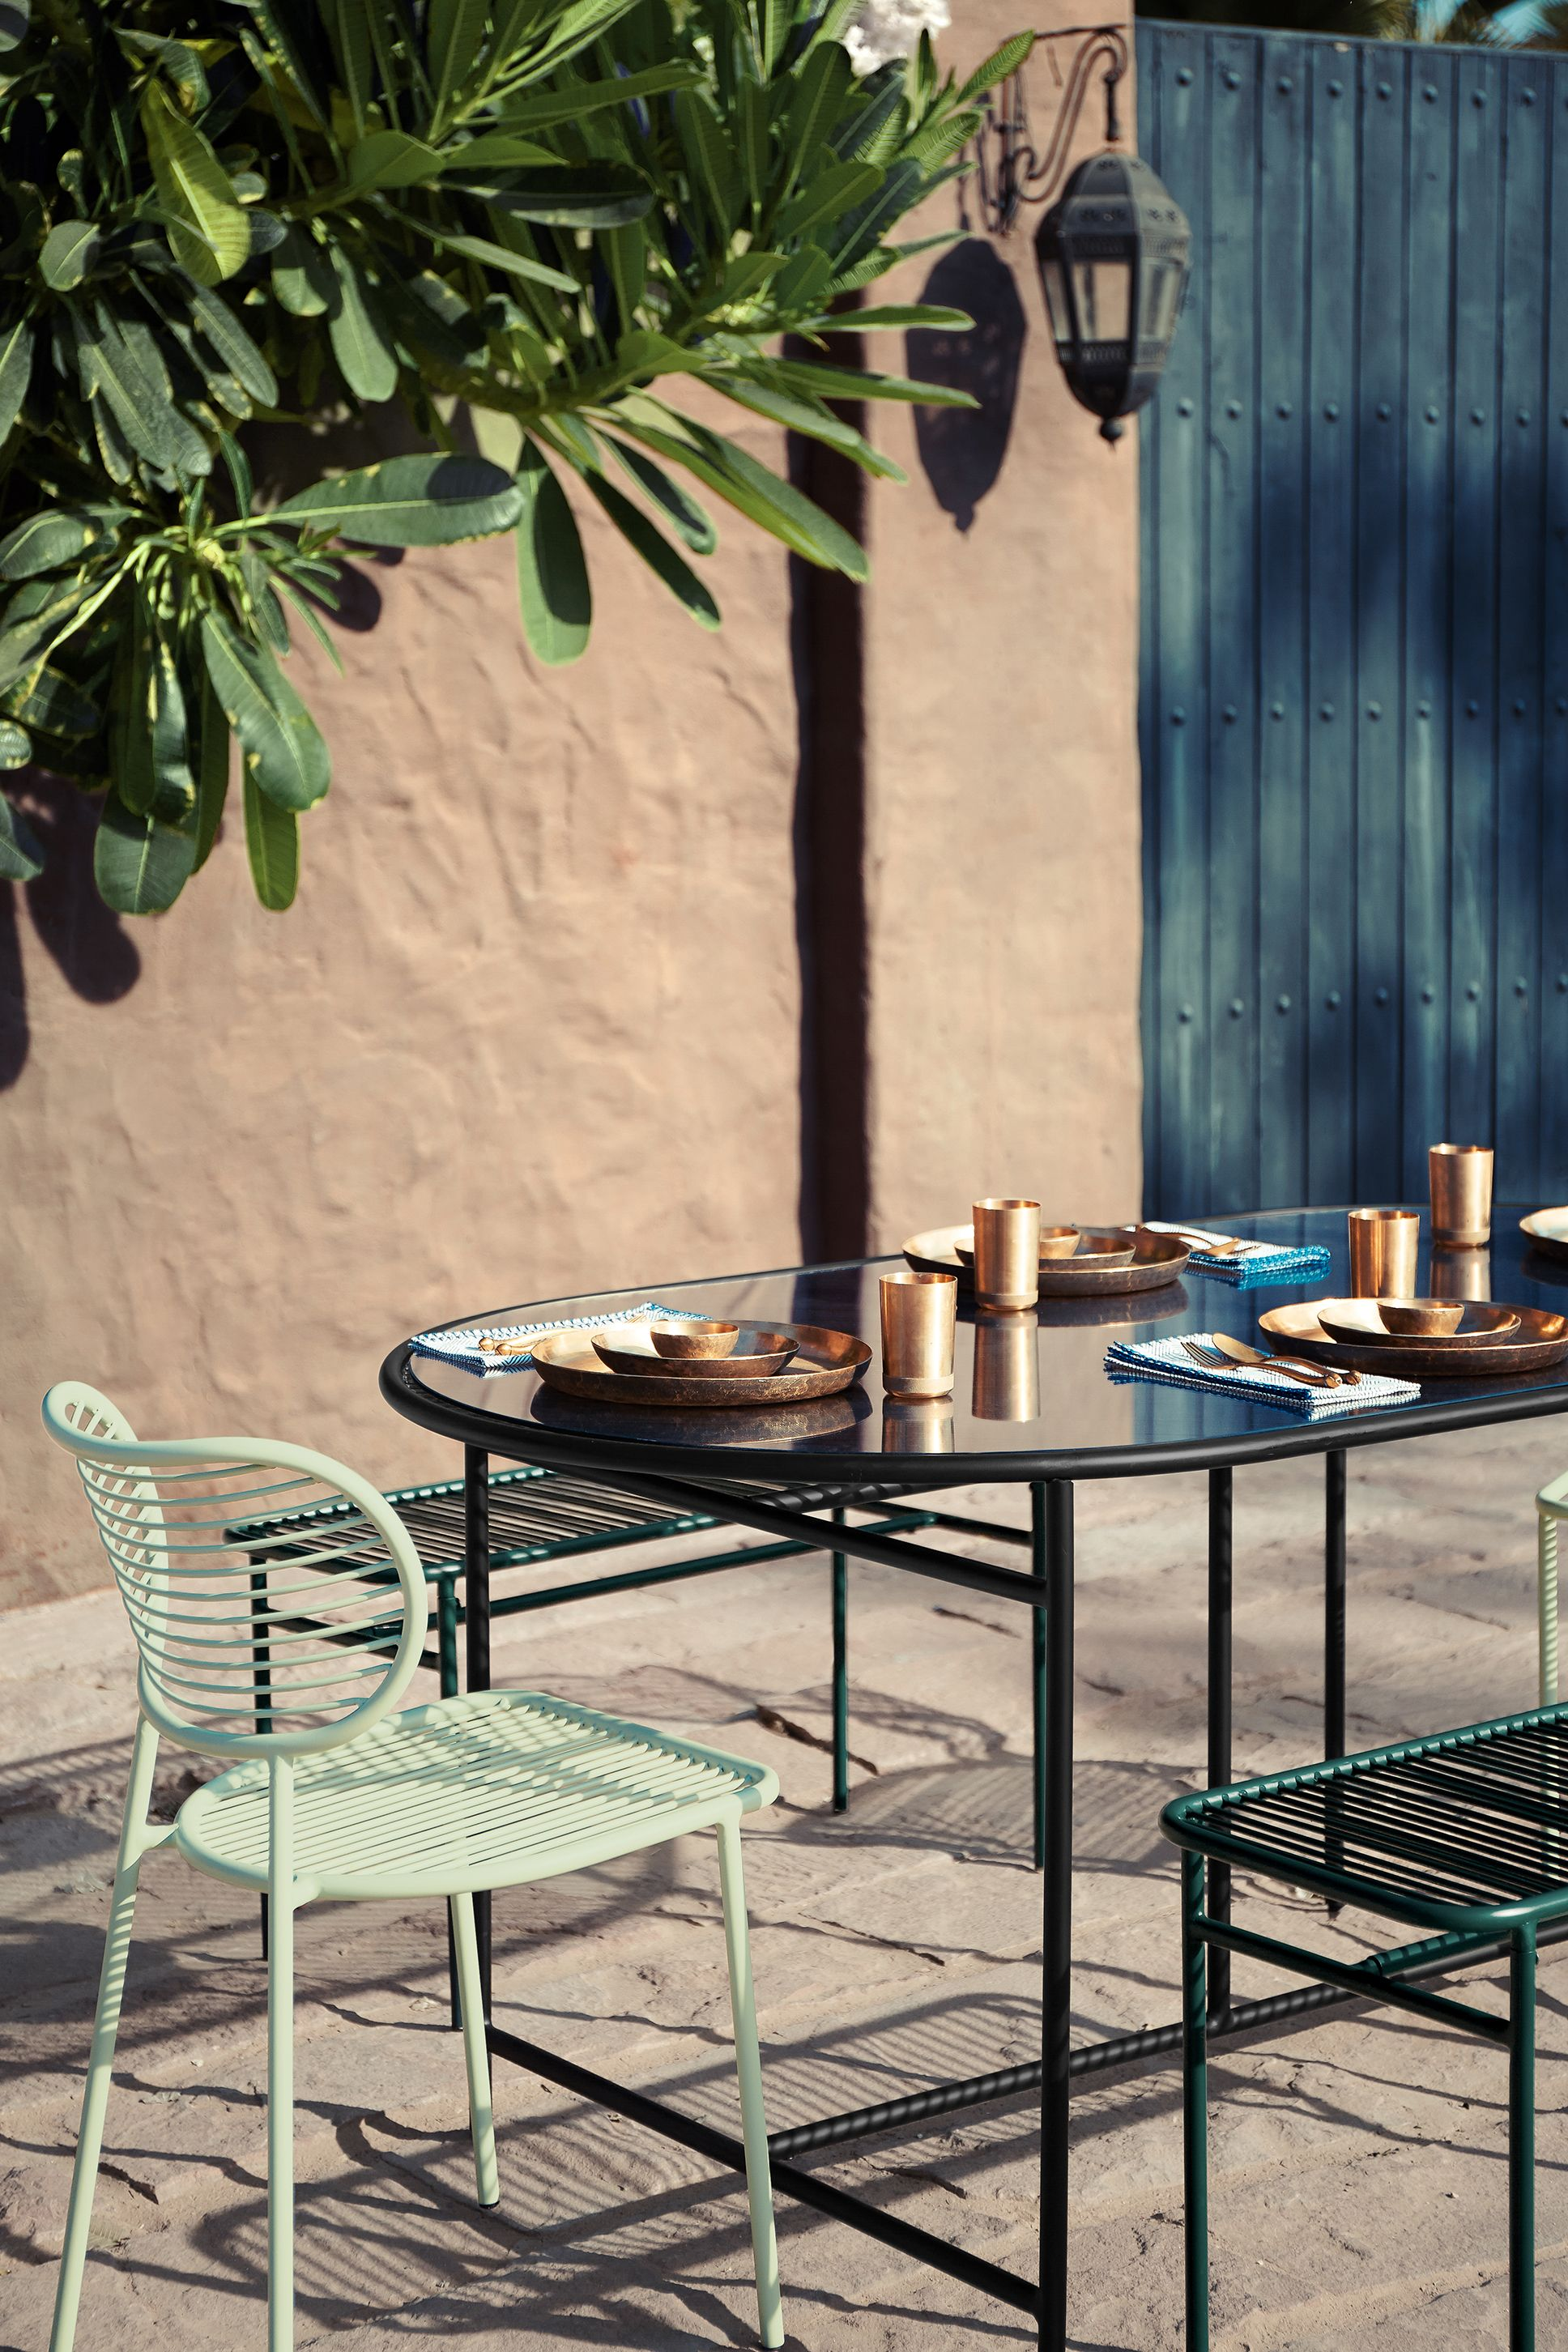 Swoon Releases First Ever Garden Furniture Range - Swoon Furniture